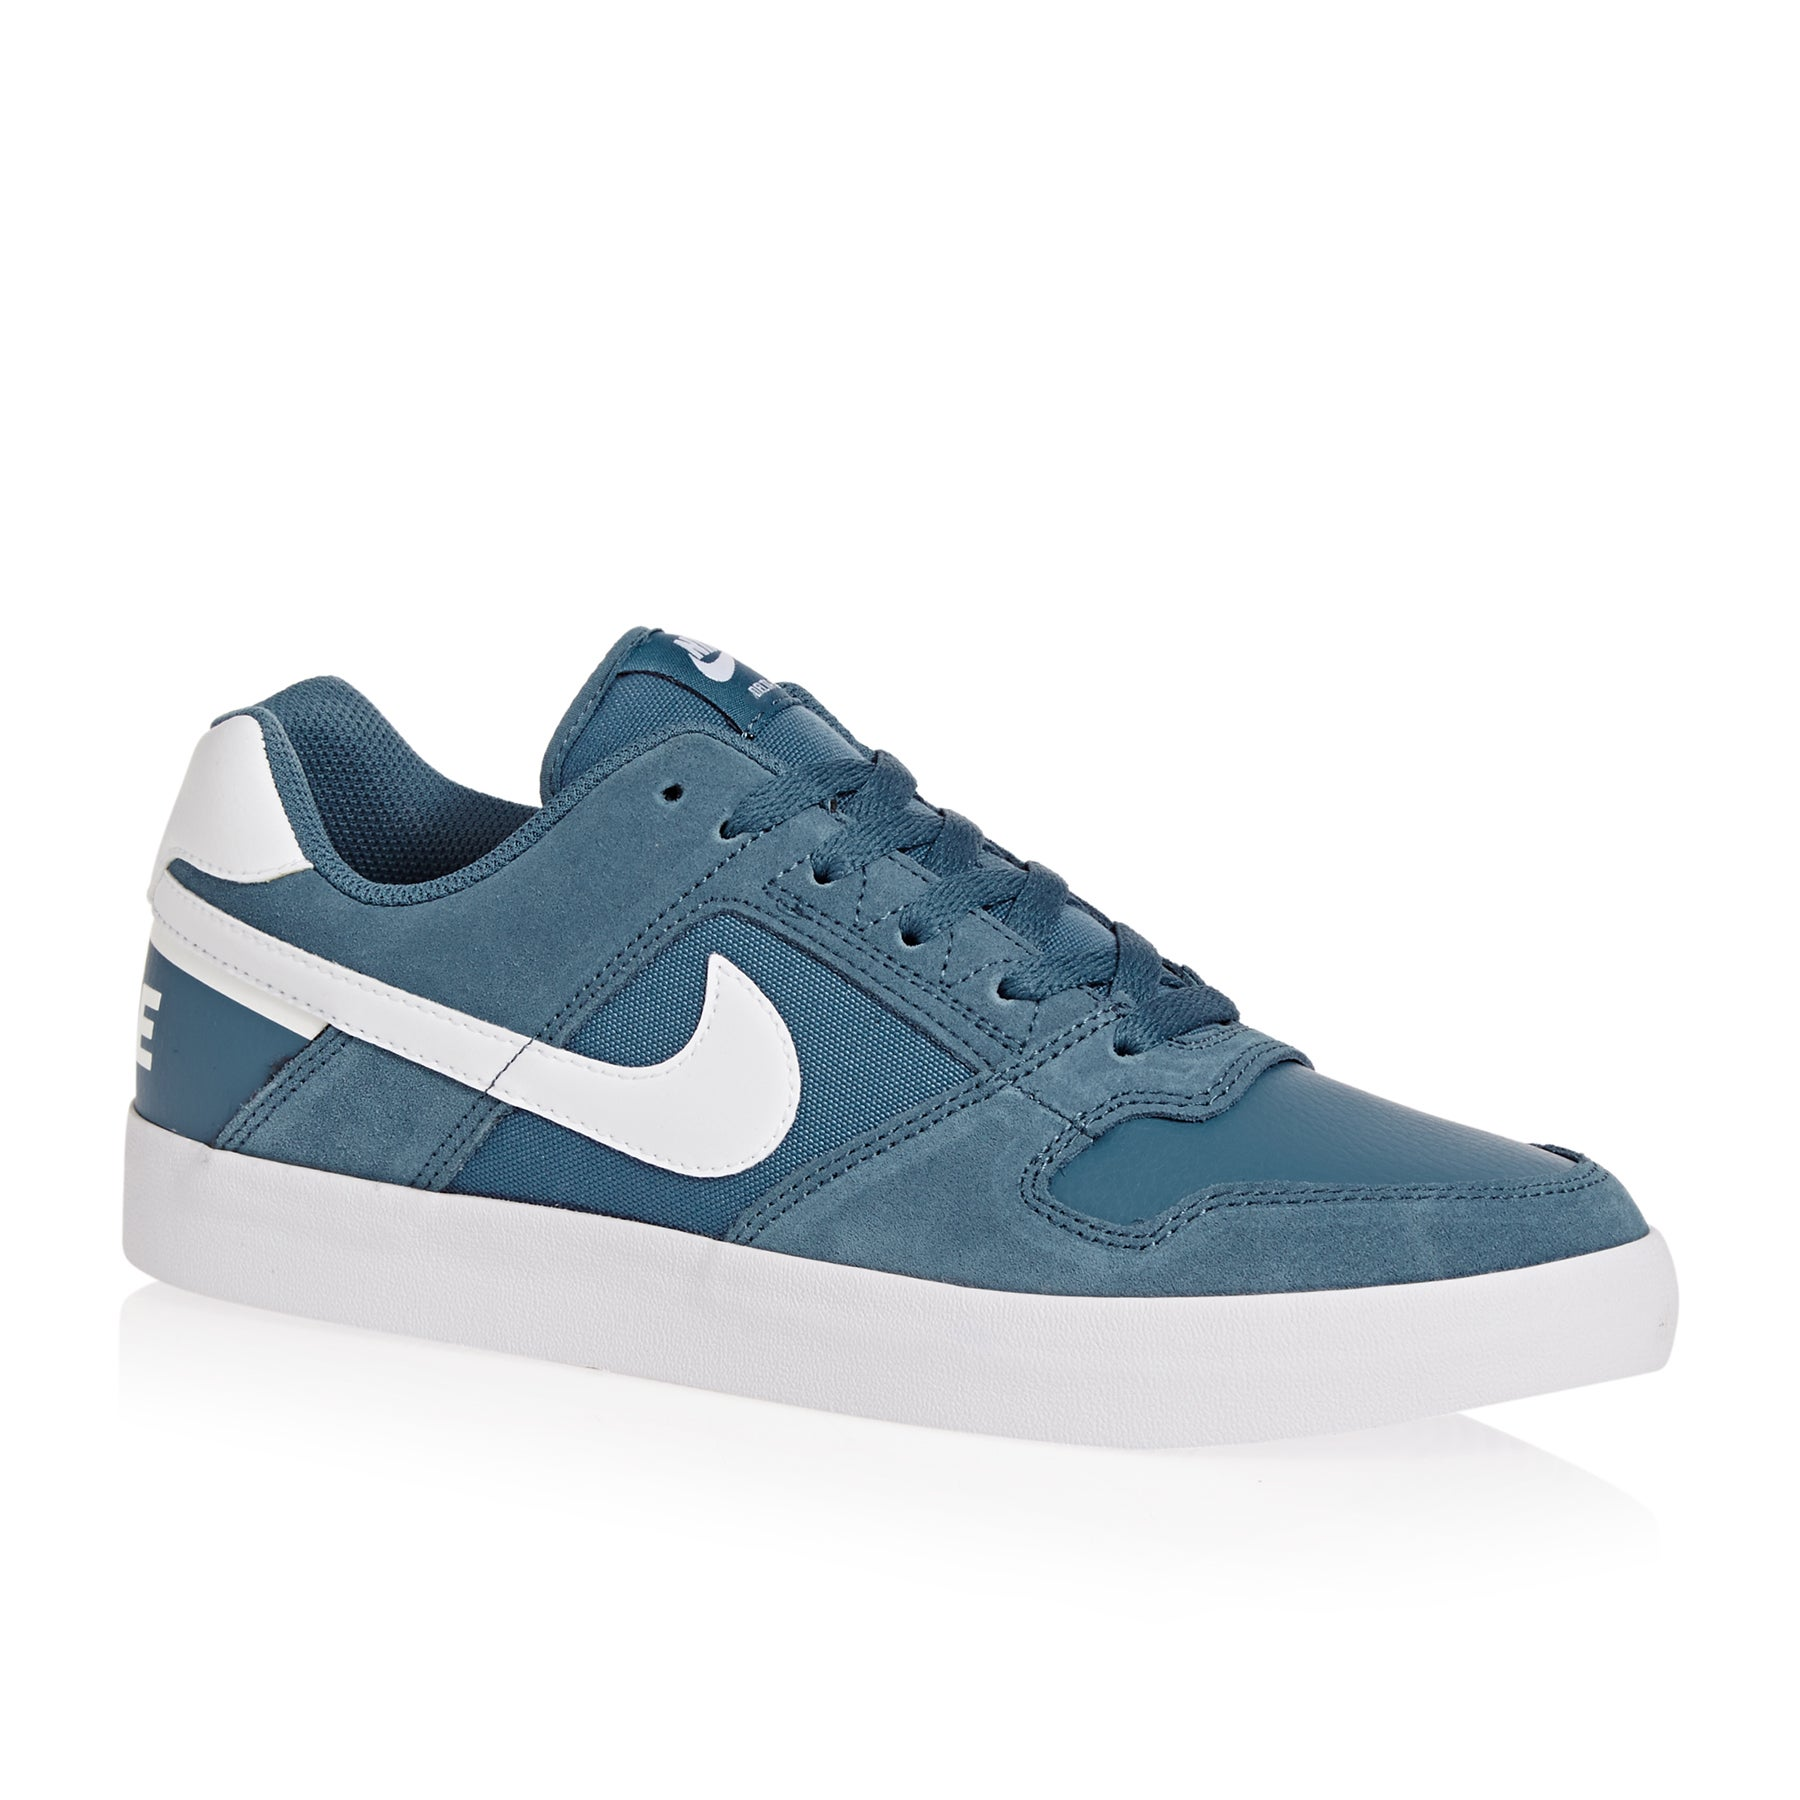 1977132397b Nike SB Delta Force Vulc Shoes available from Surfdome